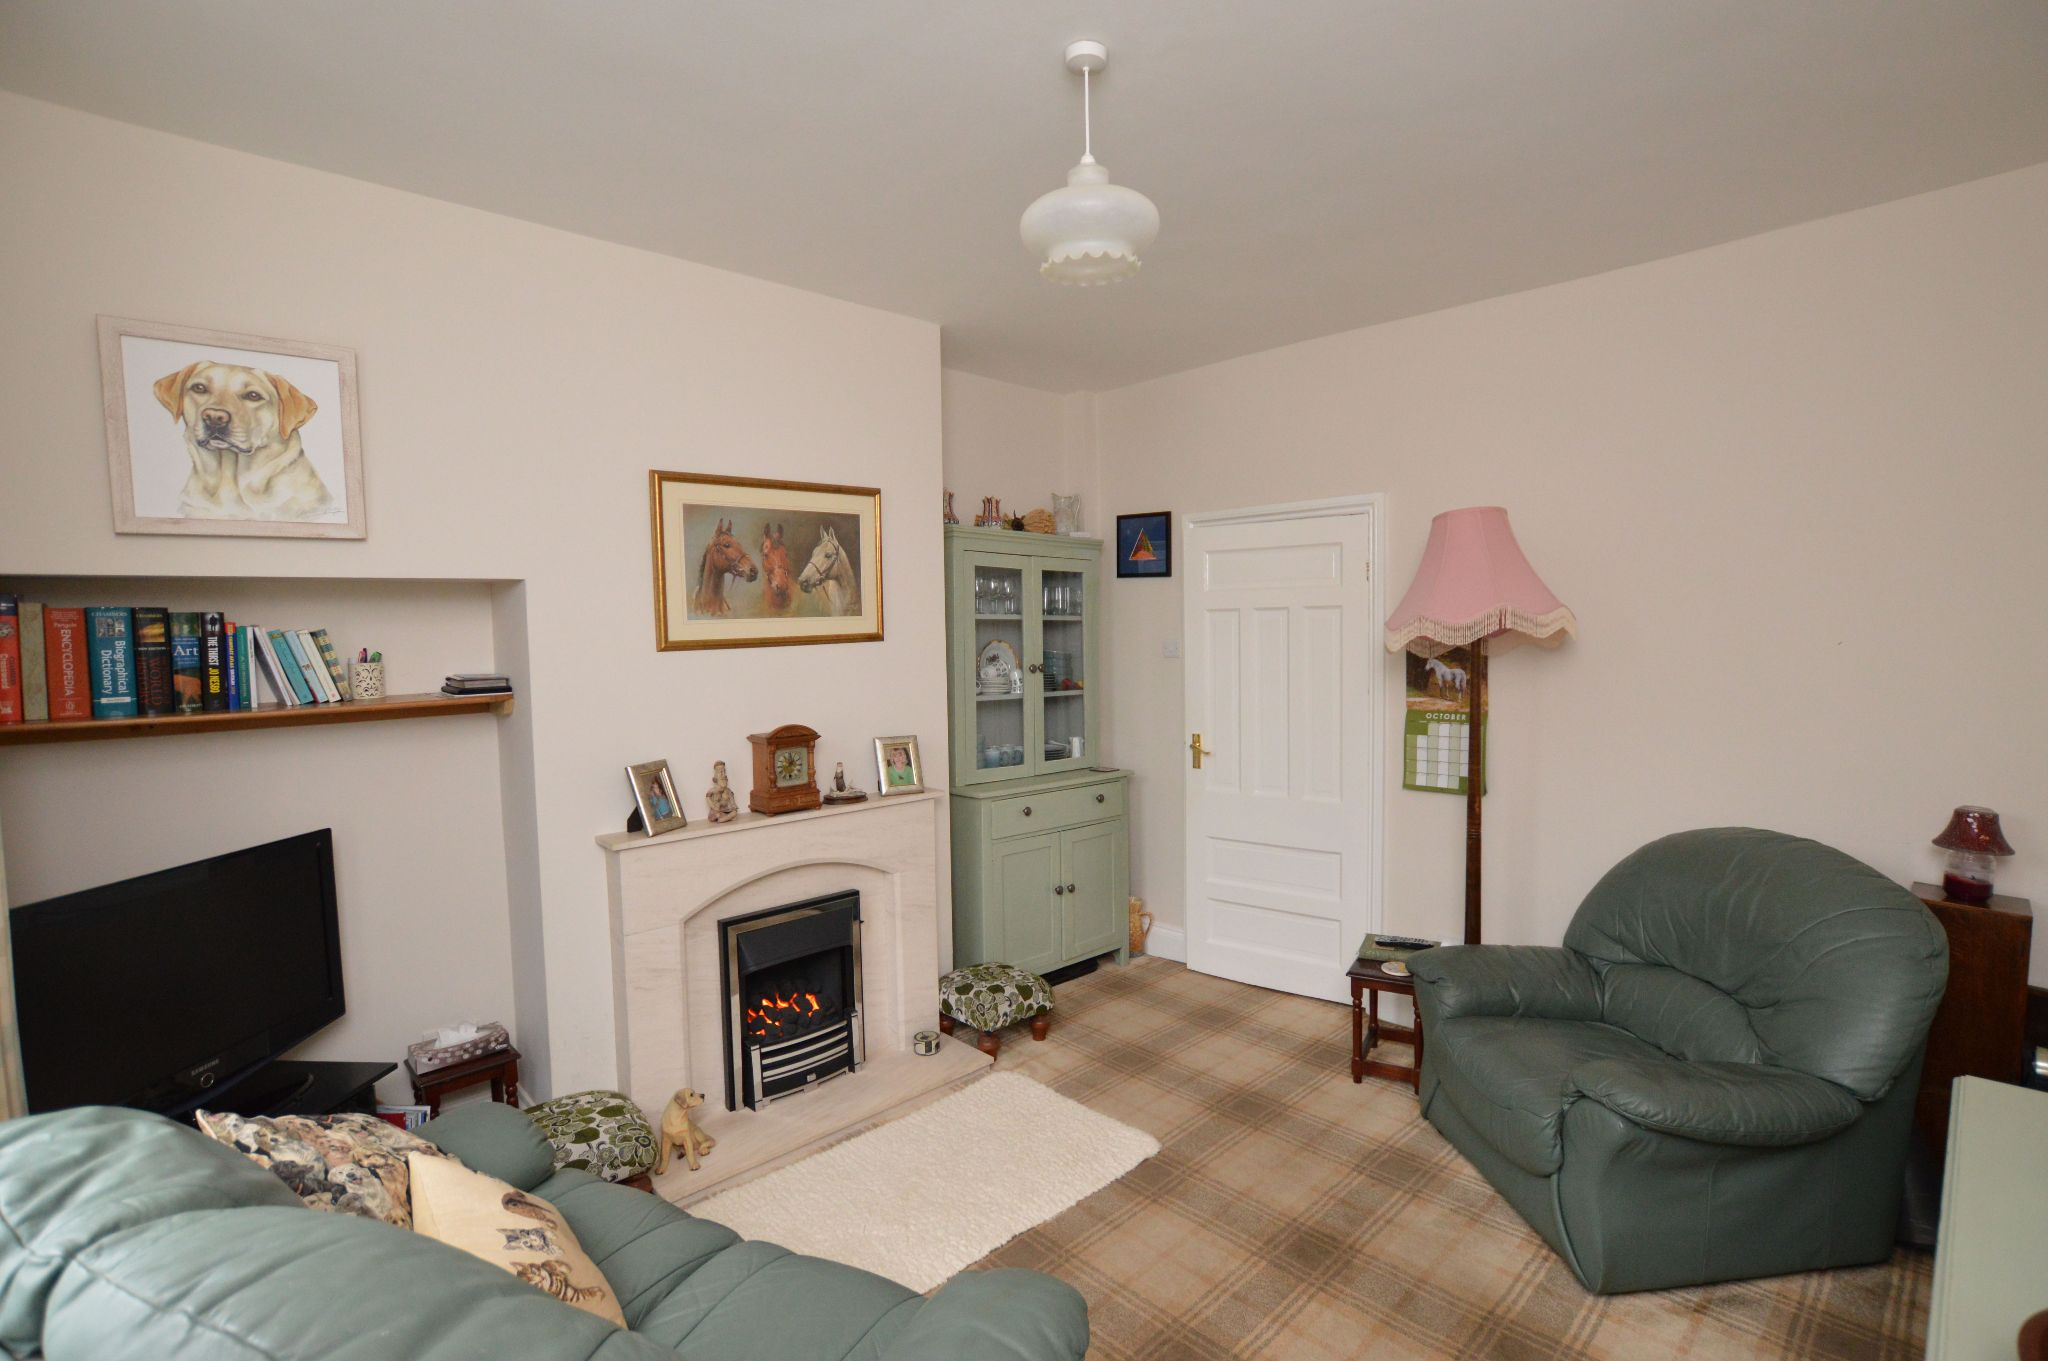 4 bedroom detached house For Sale in Abergele - Reception Room View 3